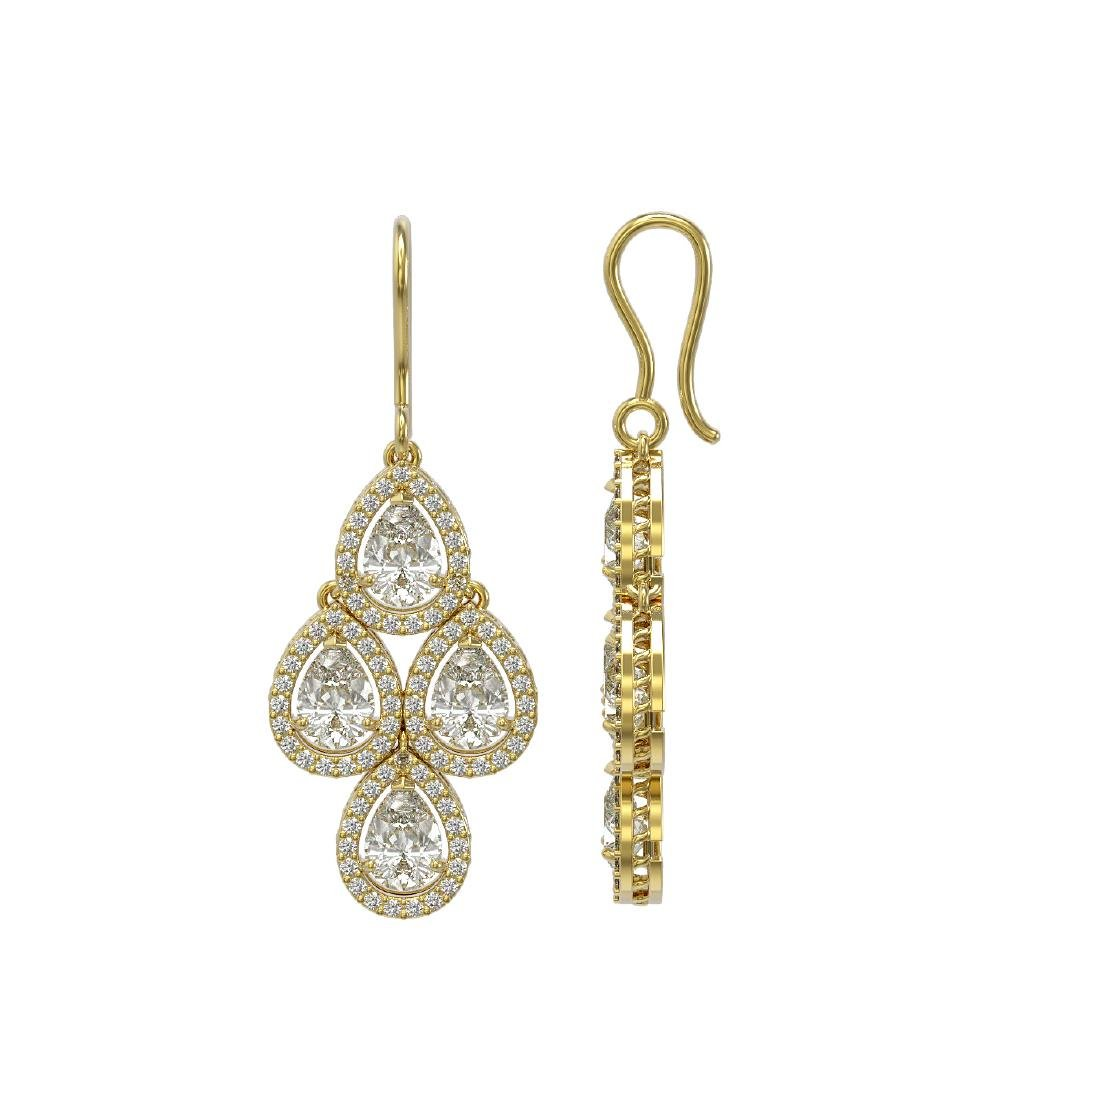 5.85 CTW Pear Diamond Designer Earrings 18K Yellow Gold - 2